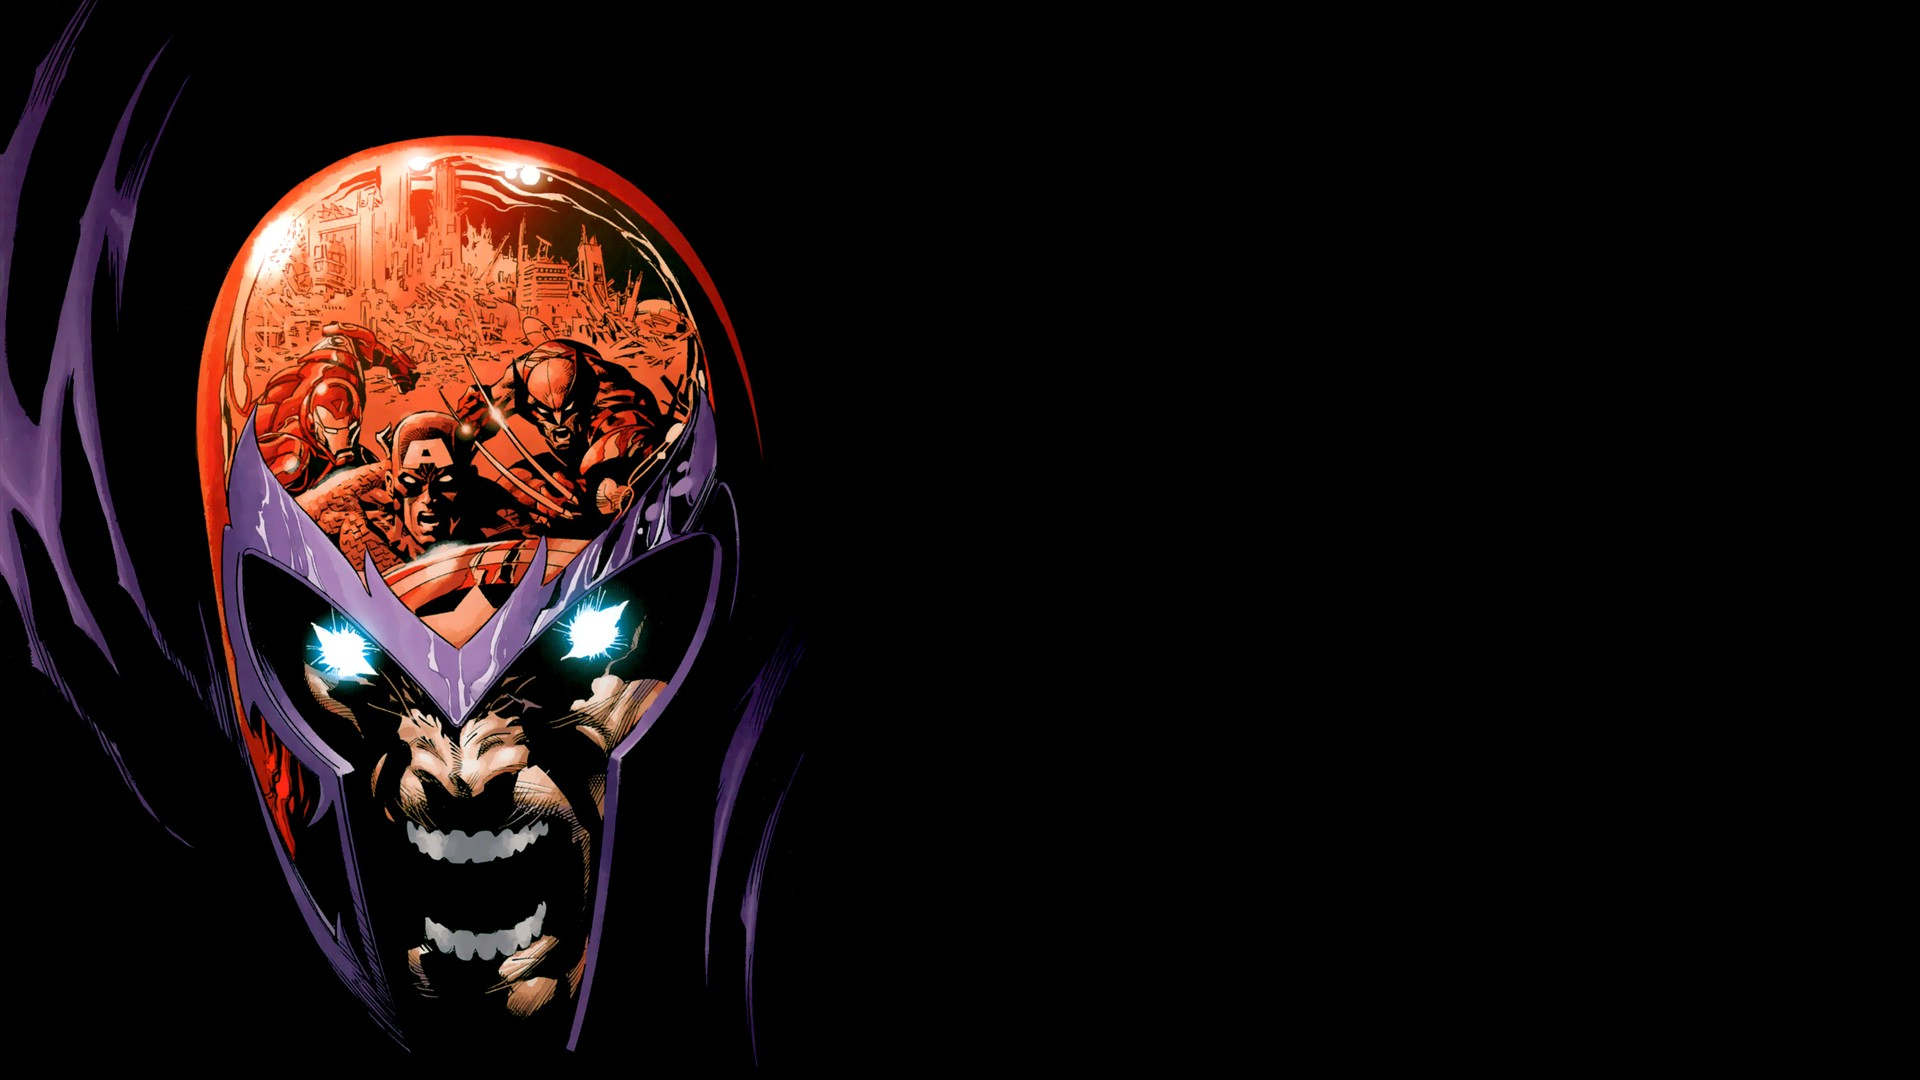 1920x1080 - Magneto Wallpapers 22